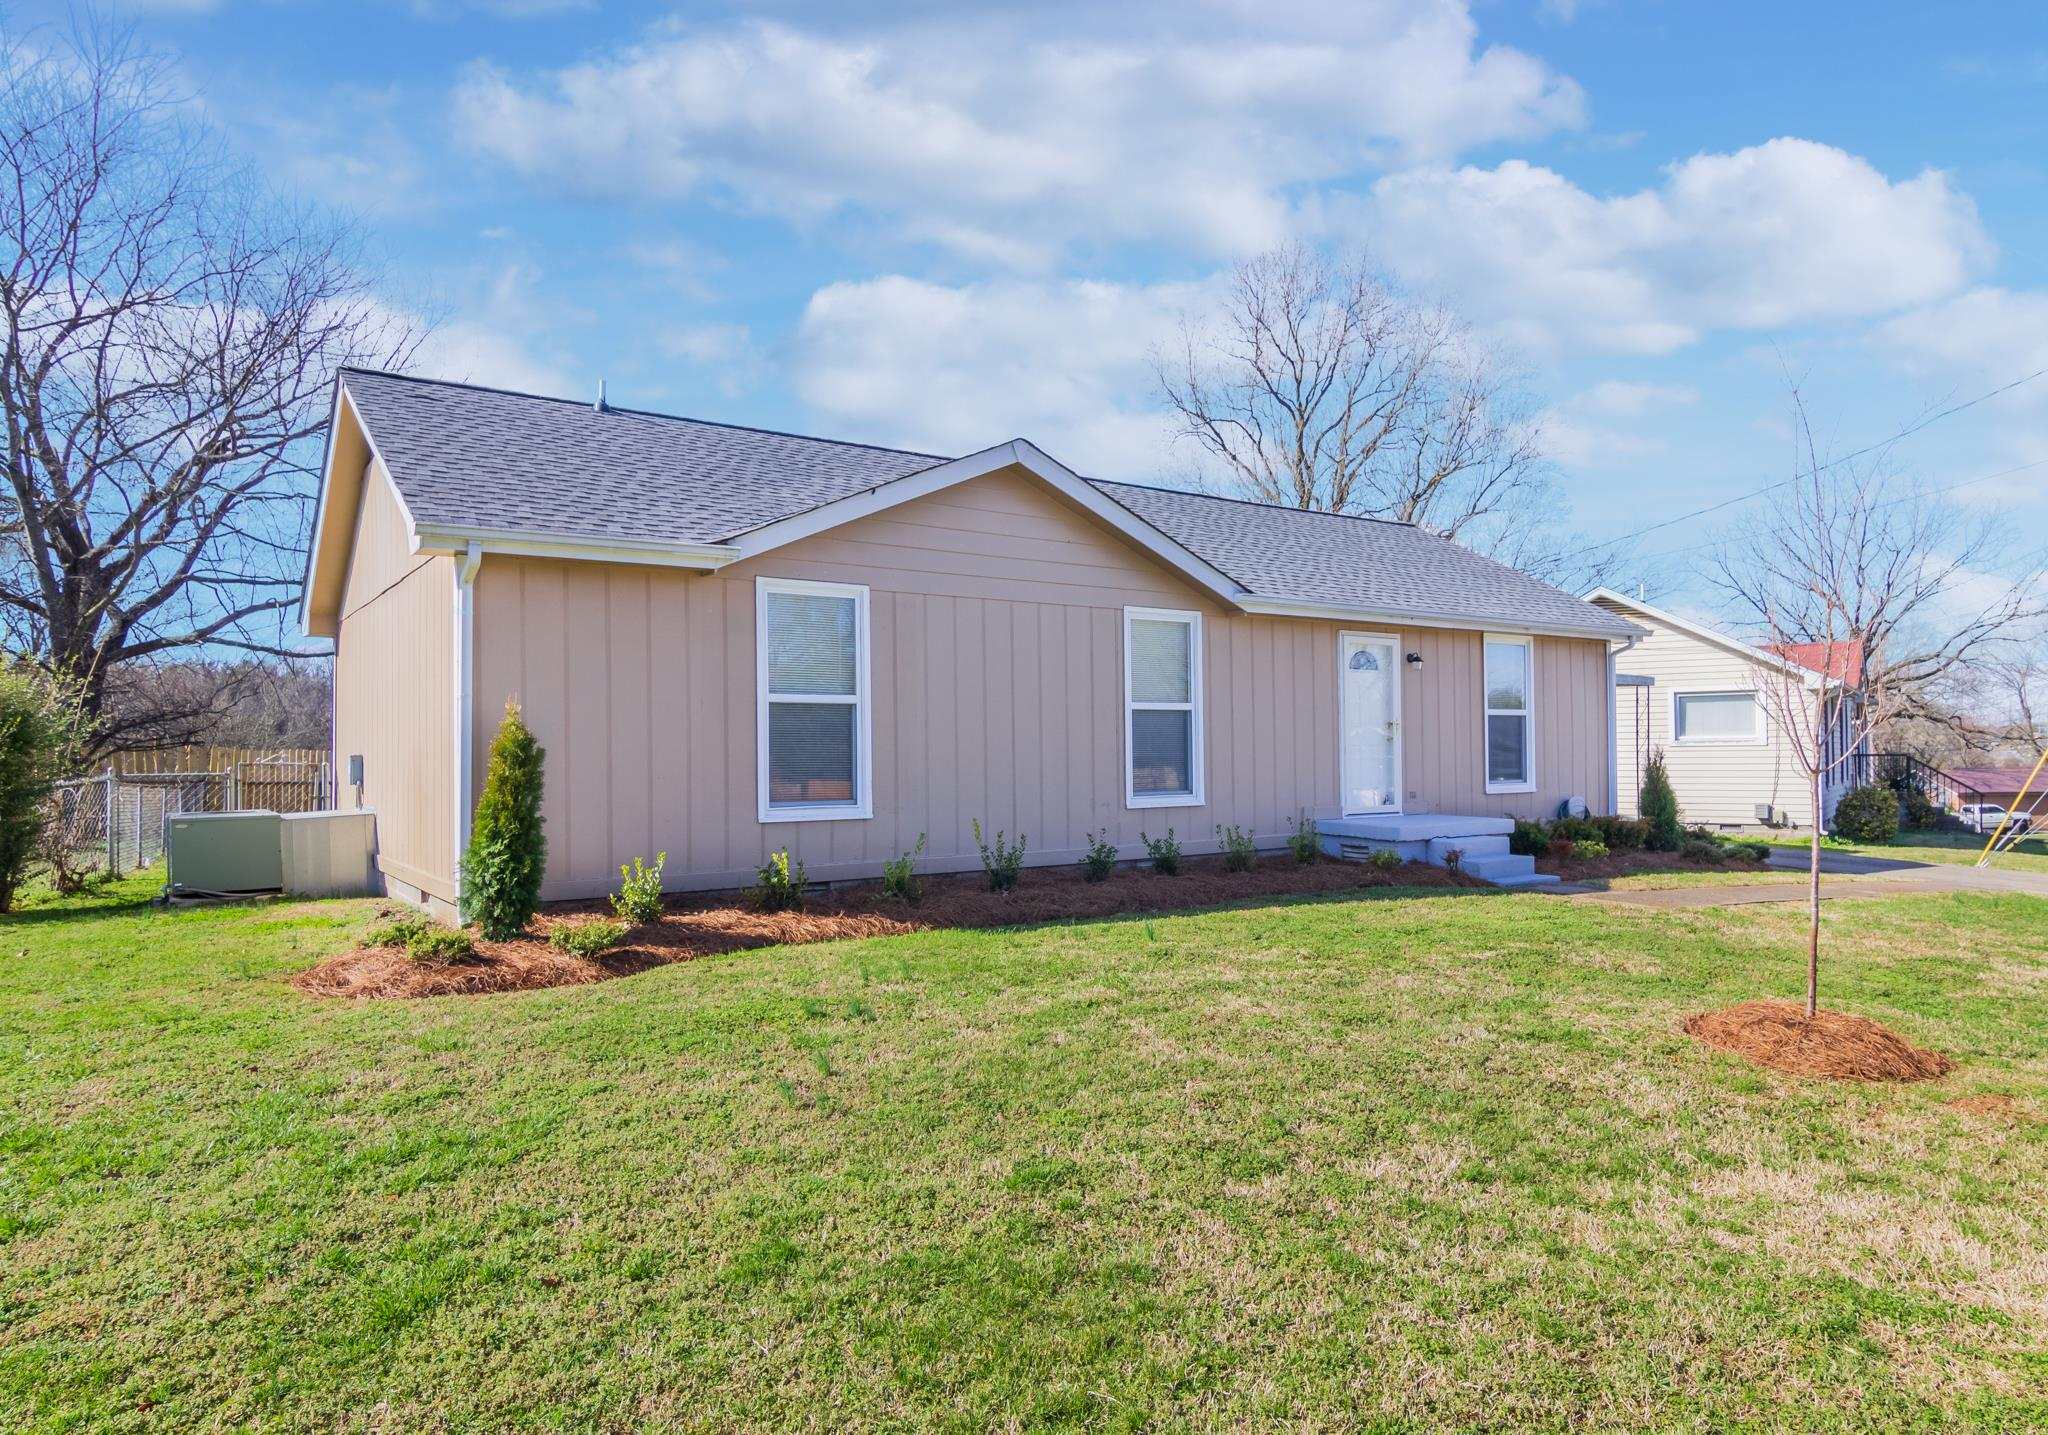 3517 Albee Dr, Hermitage in Davidson County County, TN 37076 Home for Sale